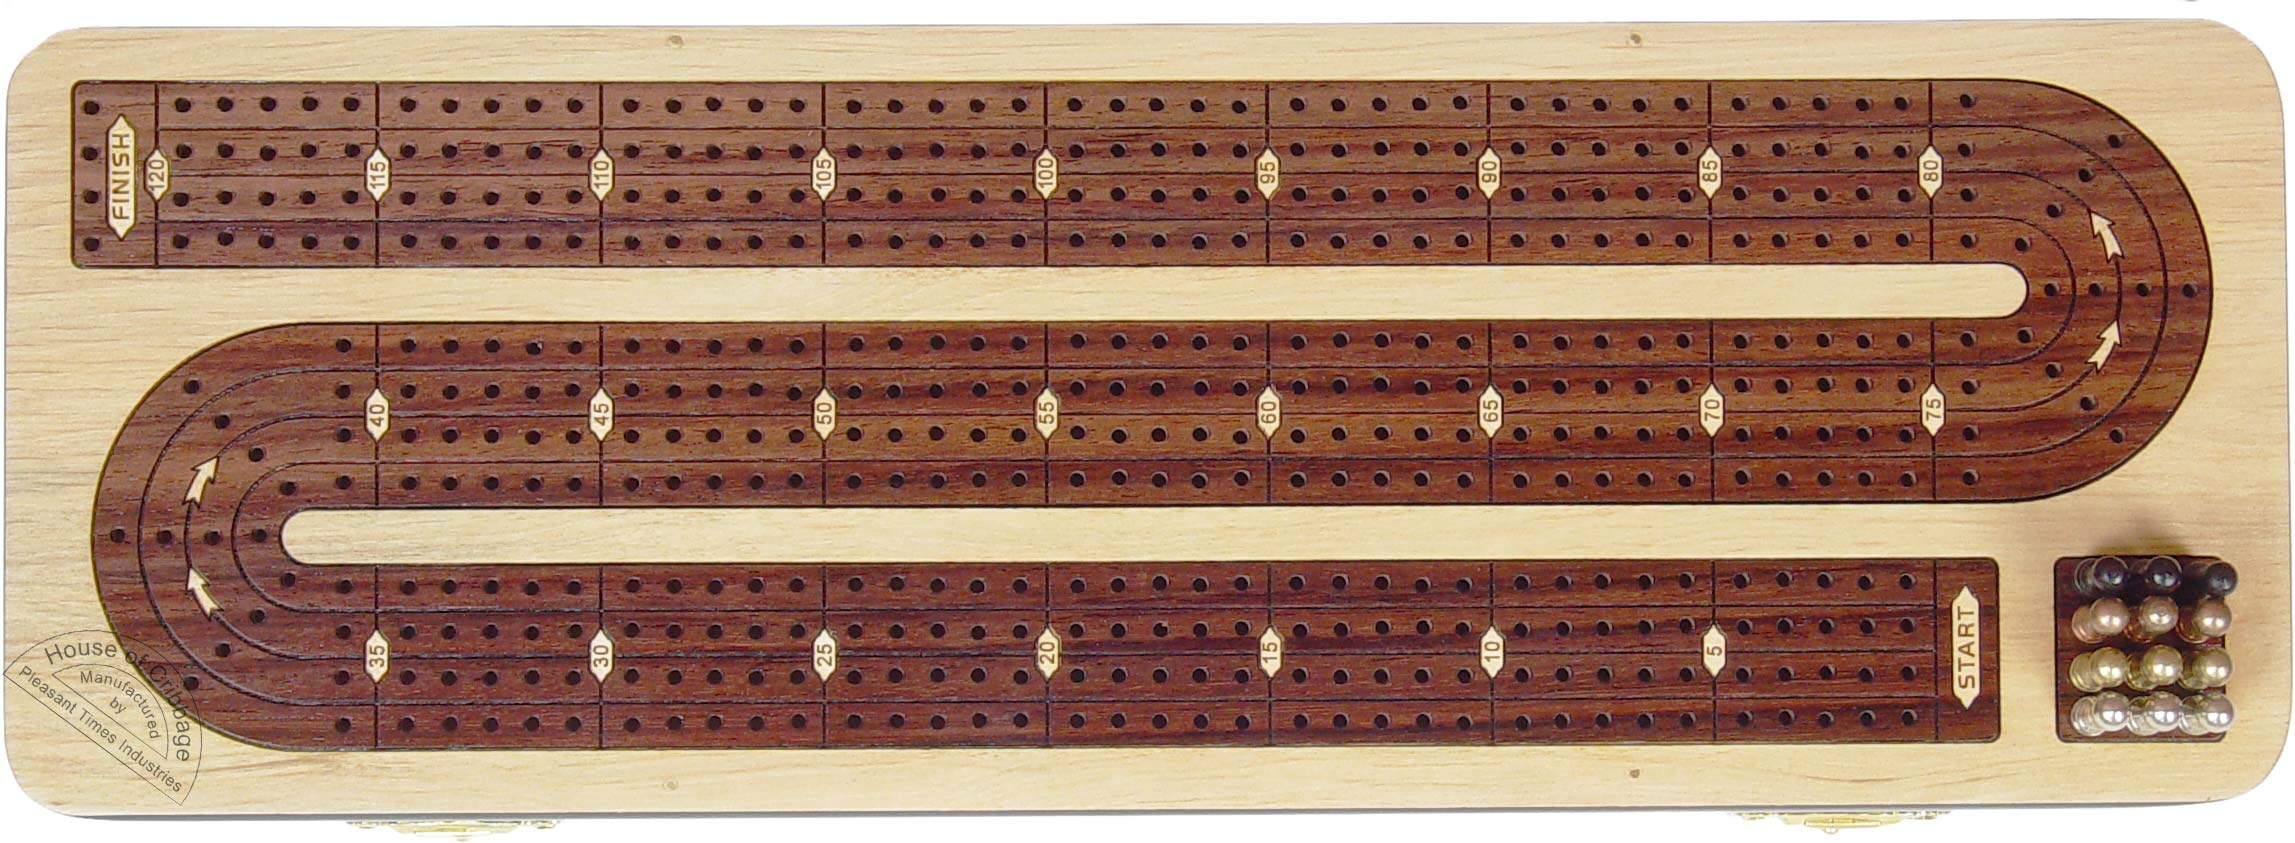 continuous-cribbage-board-4-tracks-rose-wood-sh-a-9.jpg